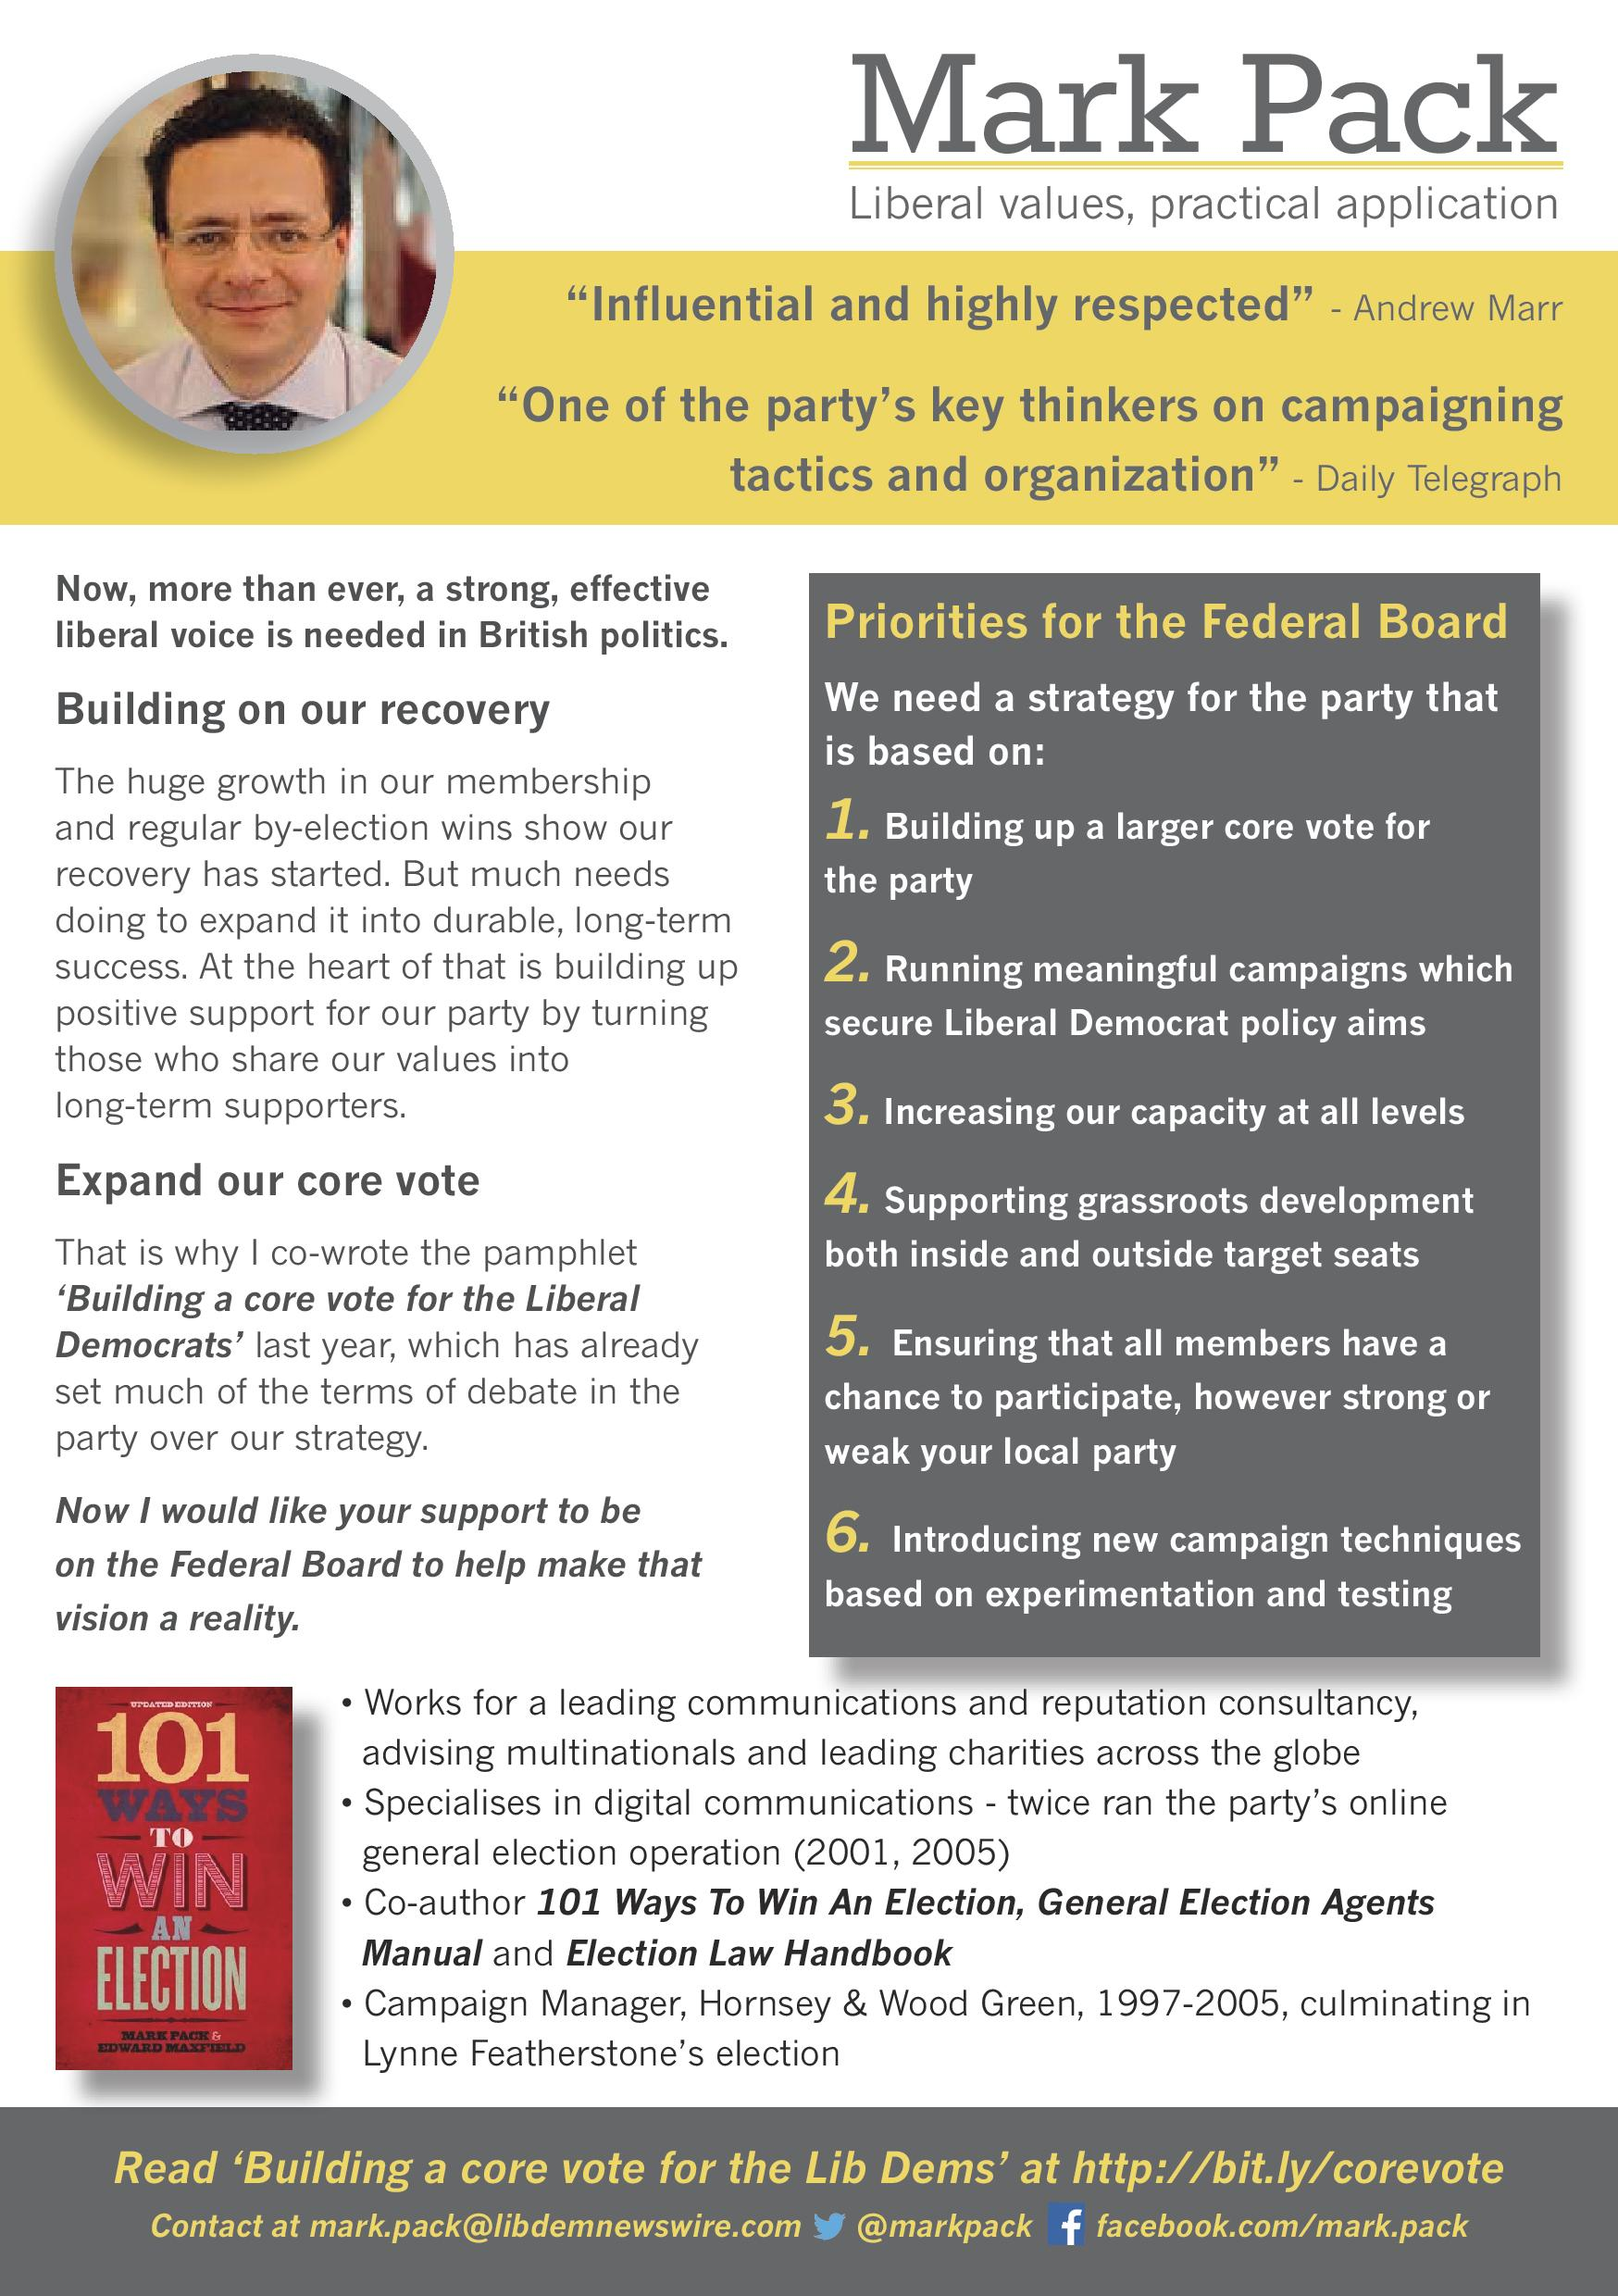 Mark Pack's Federal Board manifesto